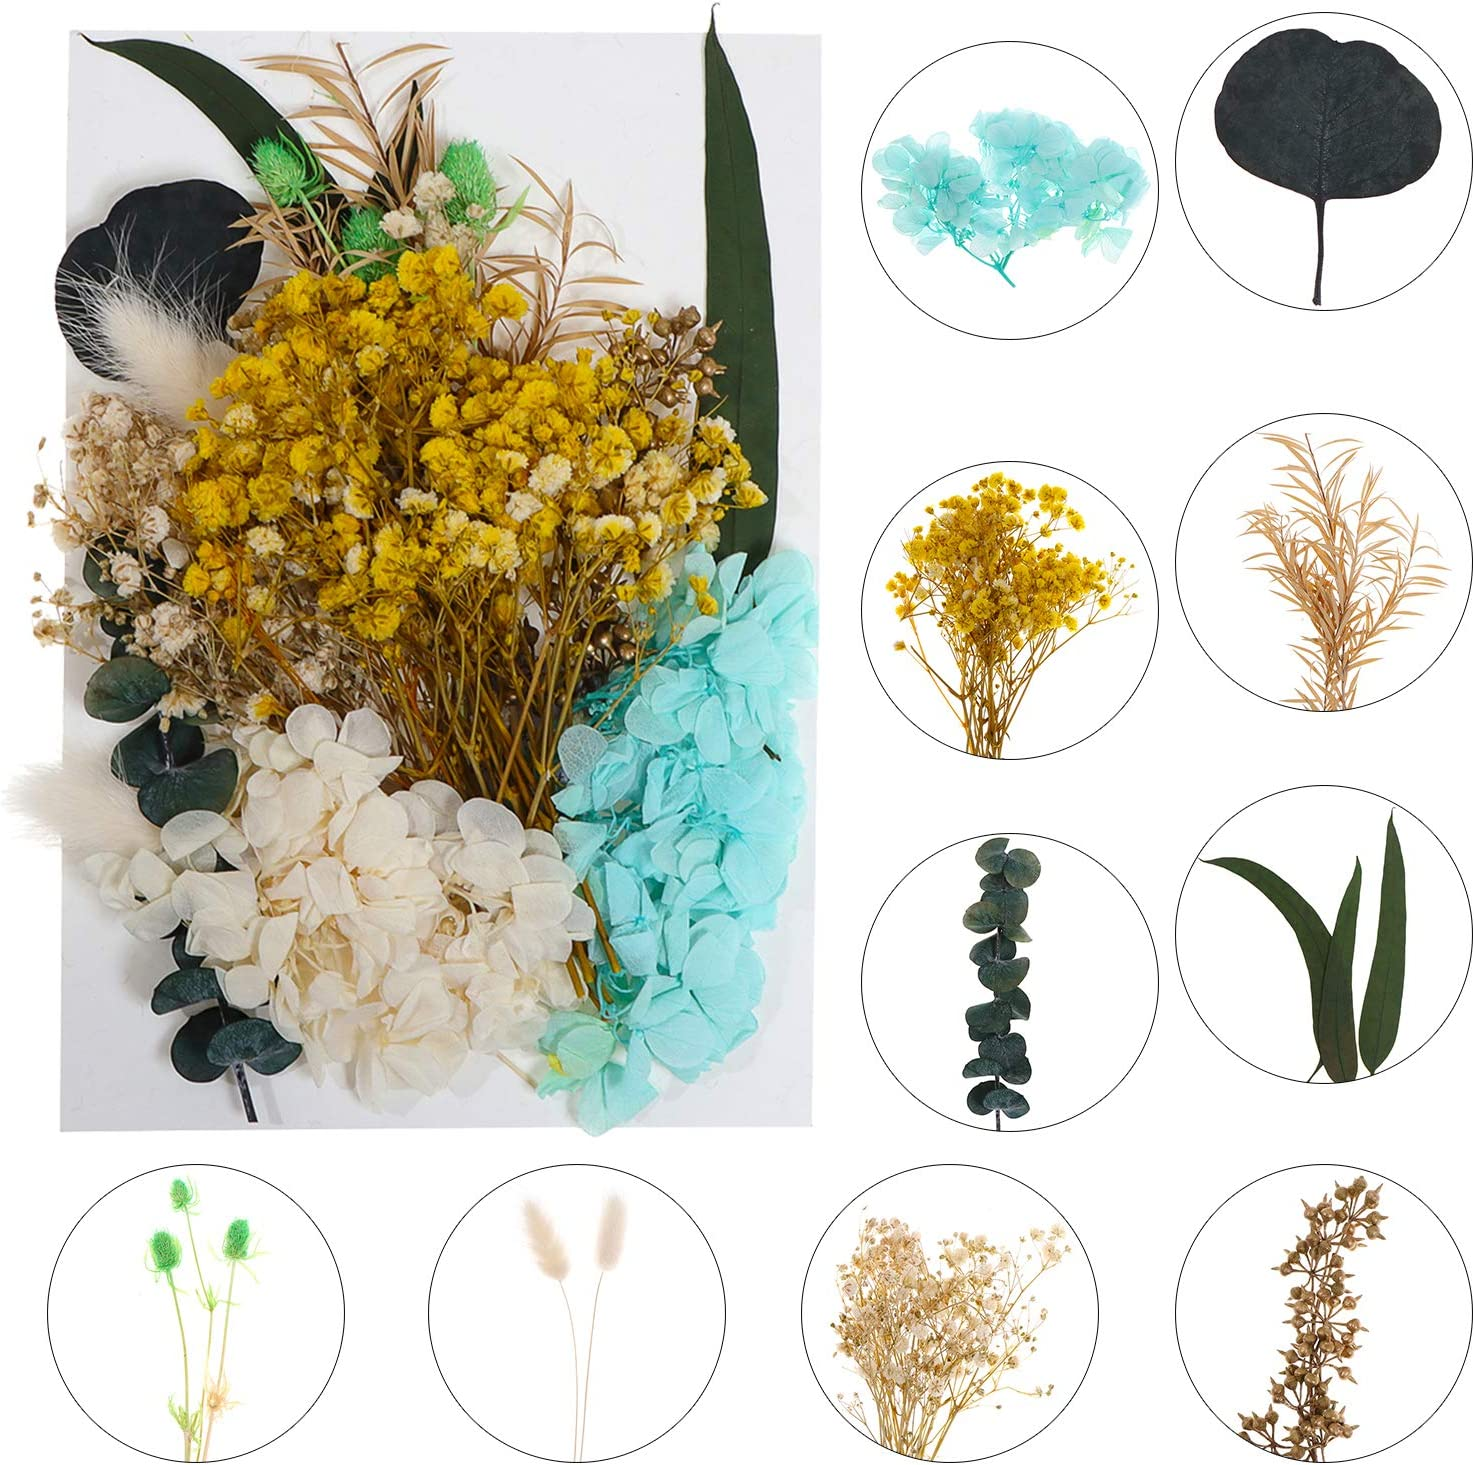 Ioffersuper 1Pack Real Dried Flowers Pressed Natural Plants Herbarium Mixed Dry Bouquets Leaves for Resin Craft Jewelry Gift Making Beauty Supplies Home DIY Painting Photo Album Decor